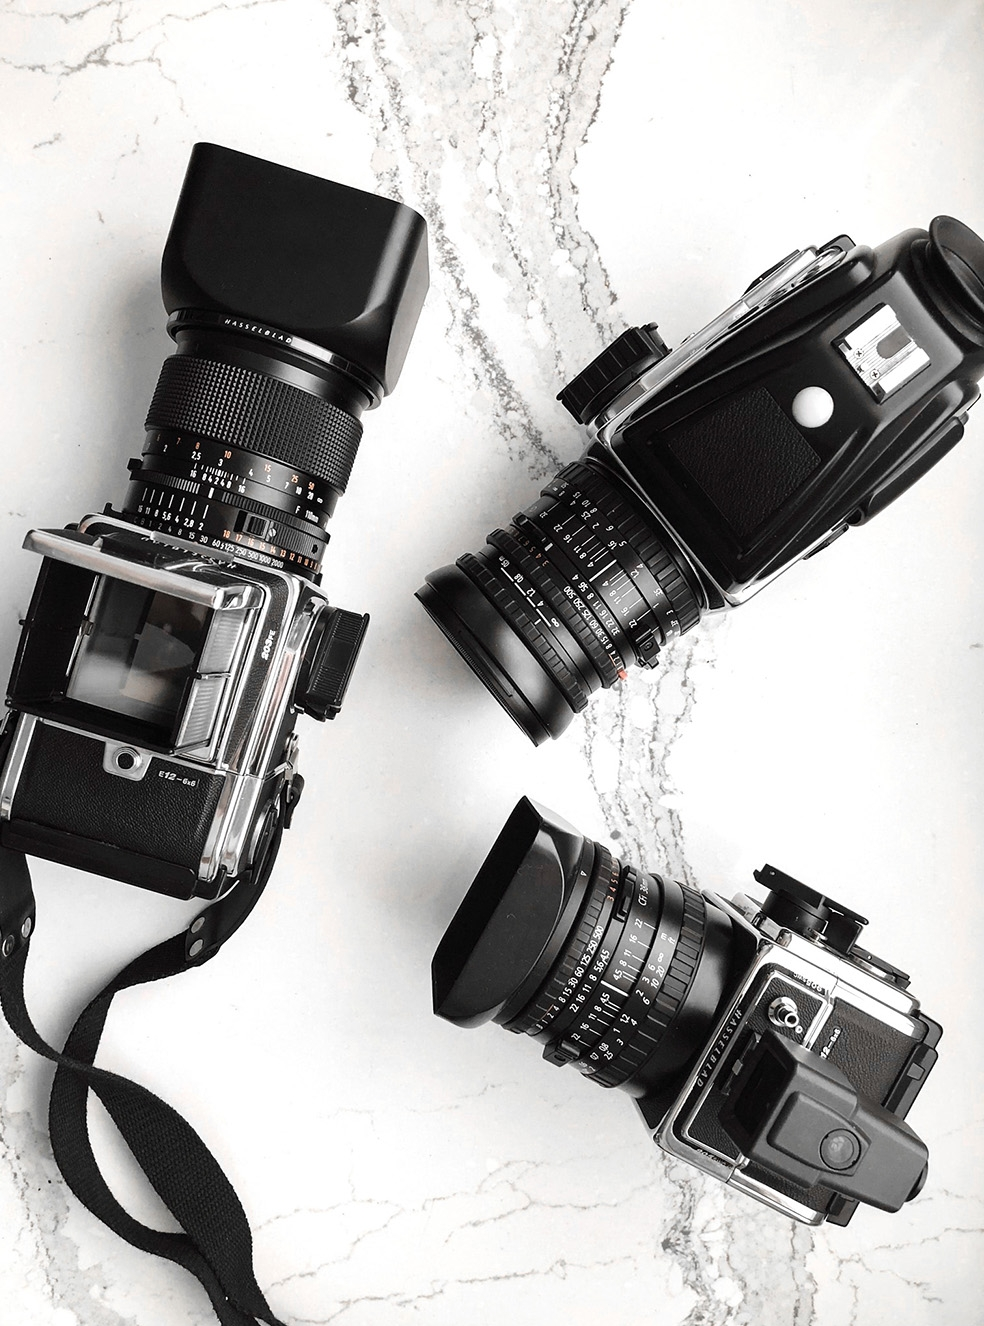 A few other fun MF cameras from our collection. Hasselblad 203FE / Planar 2/110 | Hasselblad 503CW / Distagon 4/50 | Hasselblad 905SWC / Biogon 4,5/38